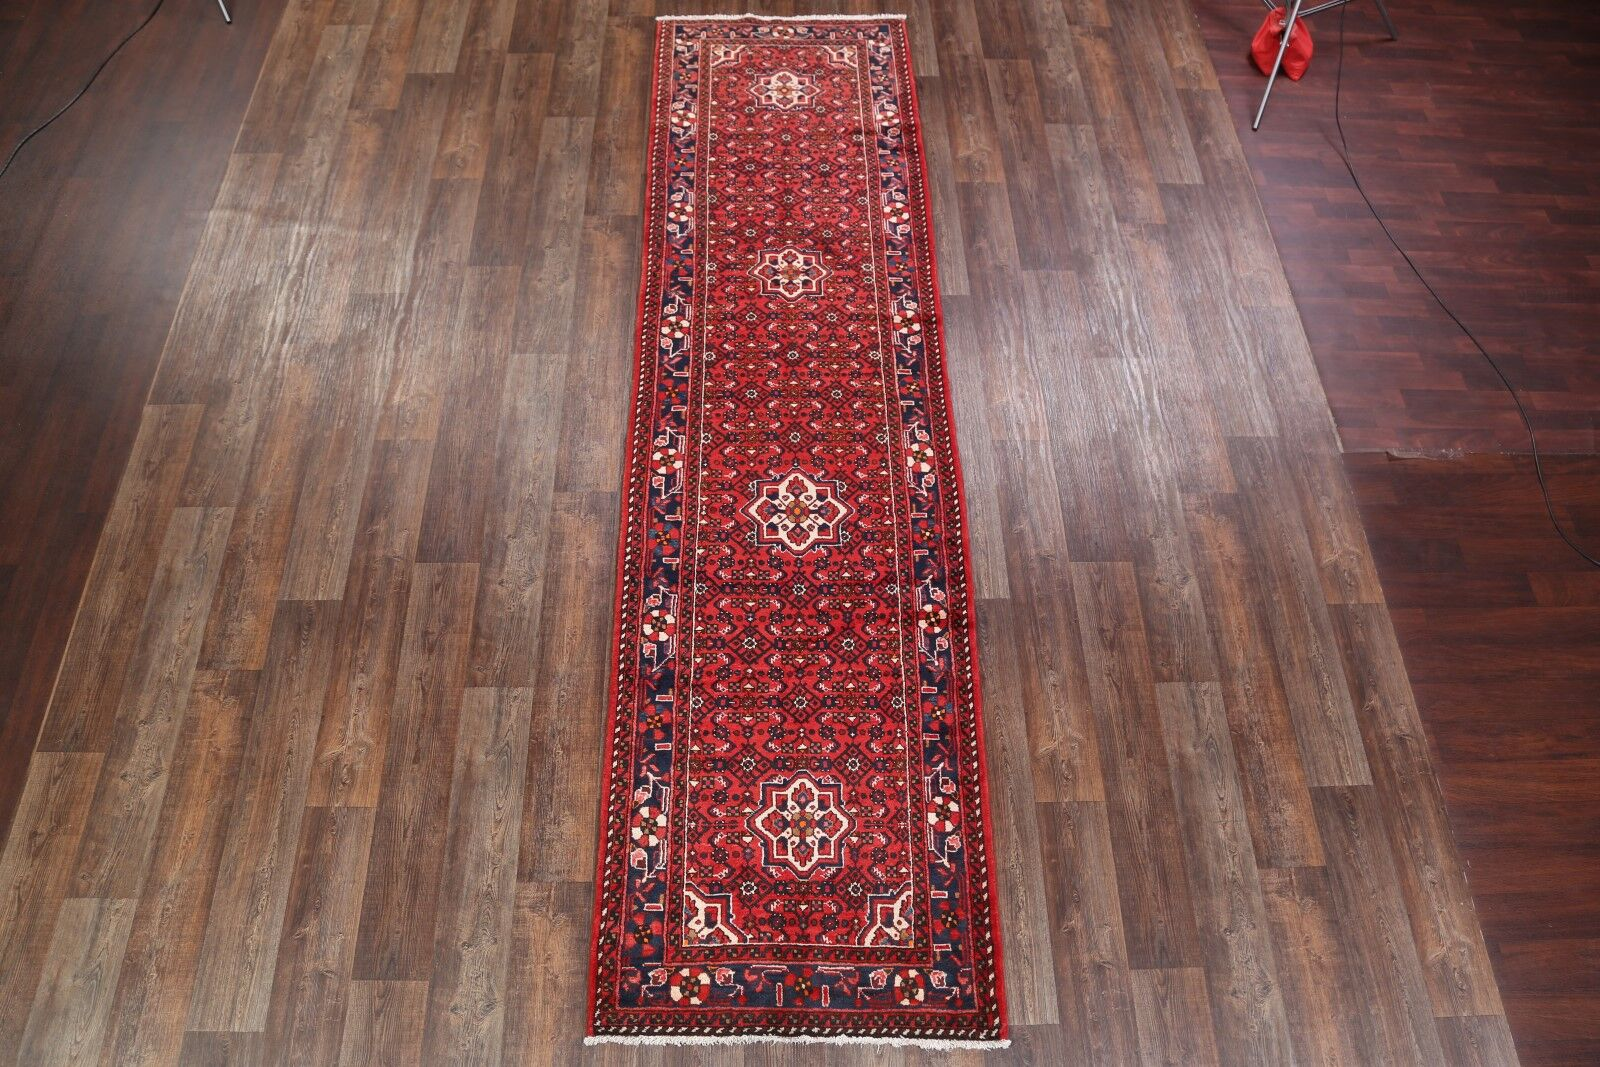 One-of-a-Kind Hamedan Persian Traditional Classical Hand-Knotted 3'6